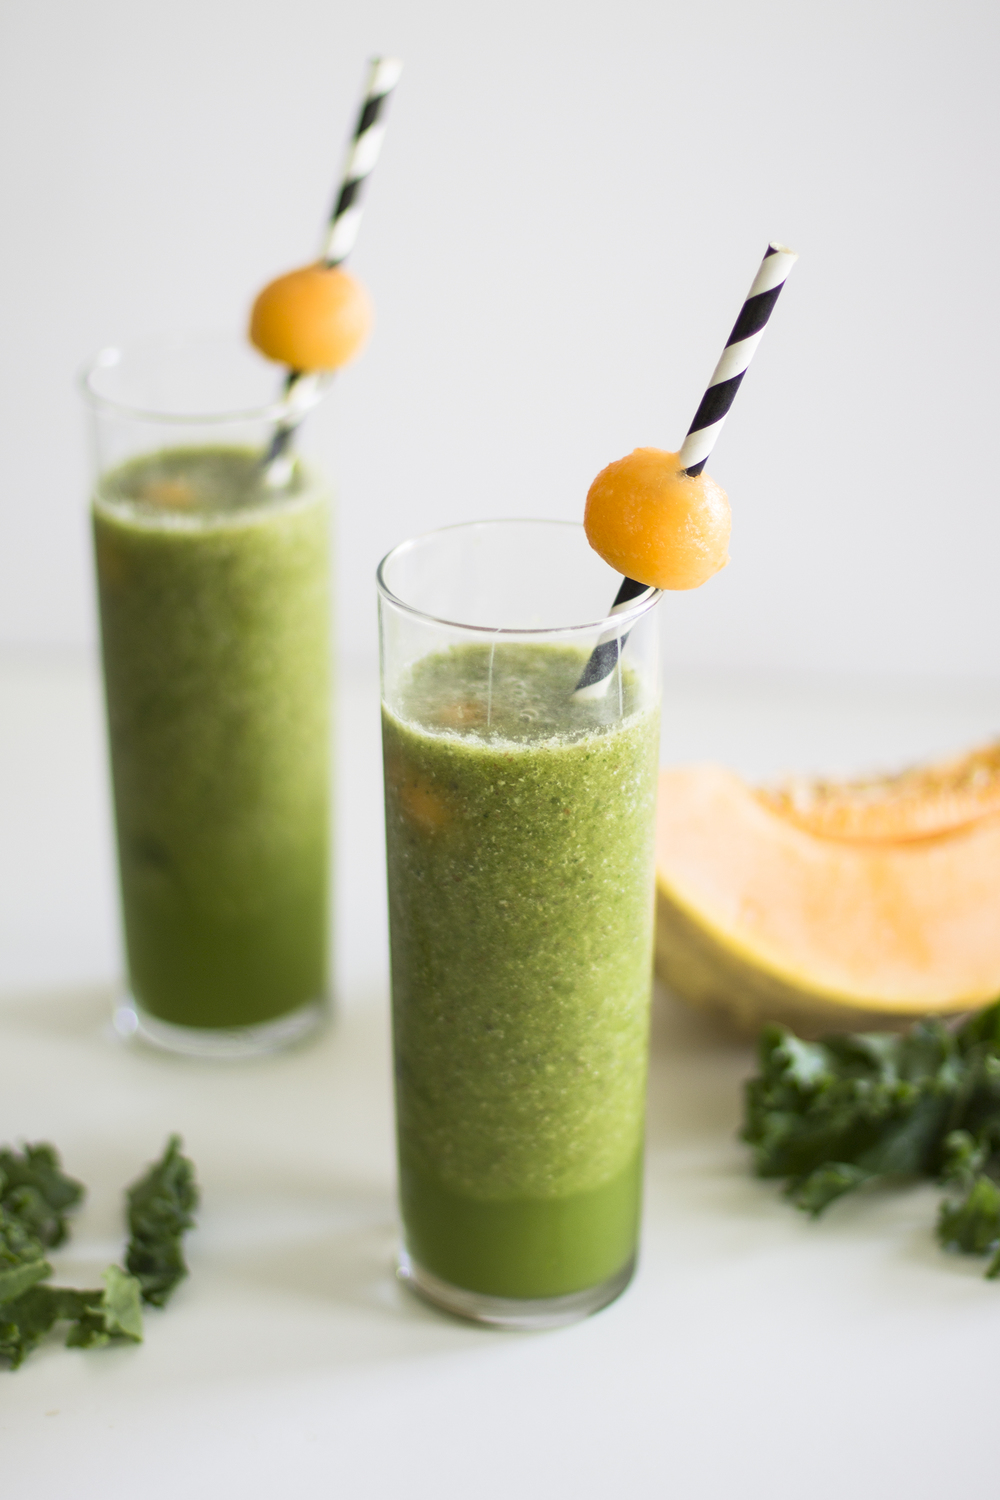 Kale and Cantaloupe Smoothie: My Diary of Us